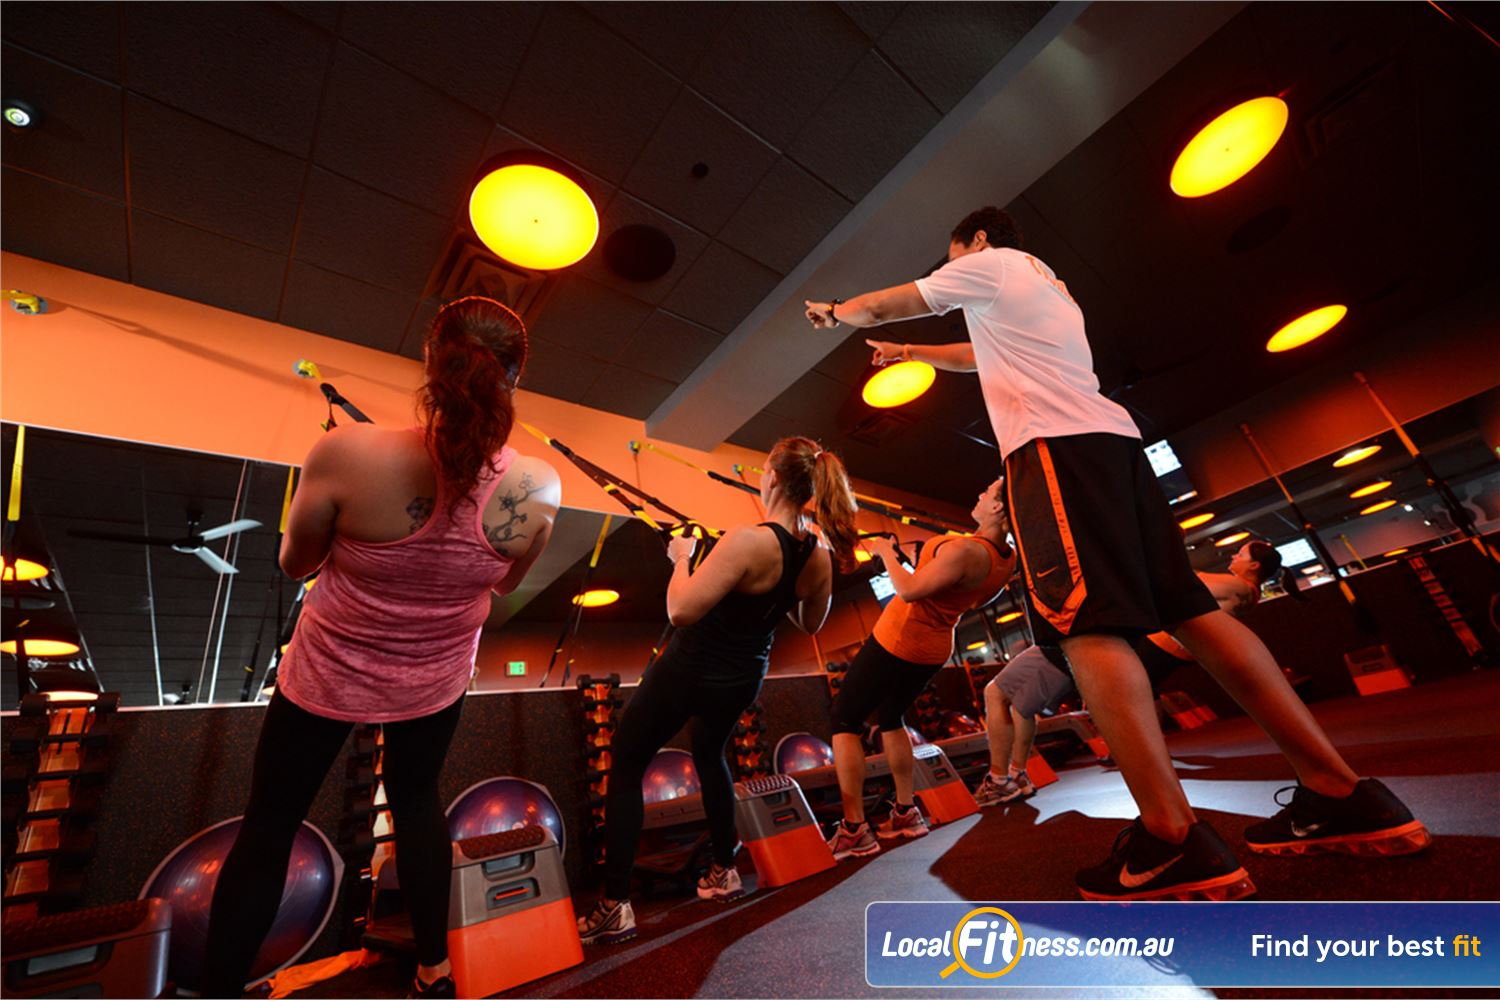 Orangetheory Fitness South Yarra Welcome to Orangetheory South Yarra - coach-inspired group workouts.